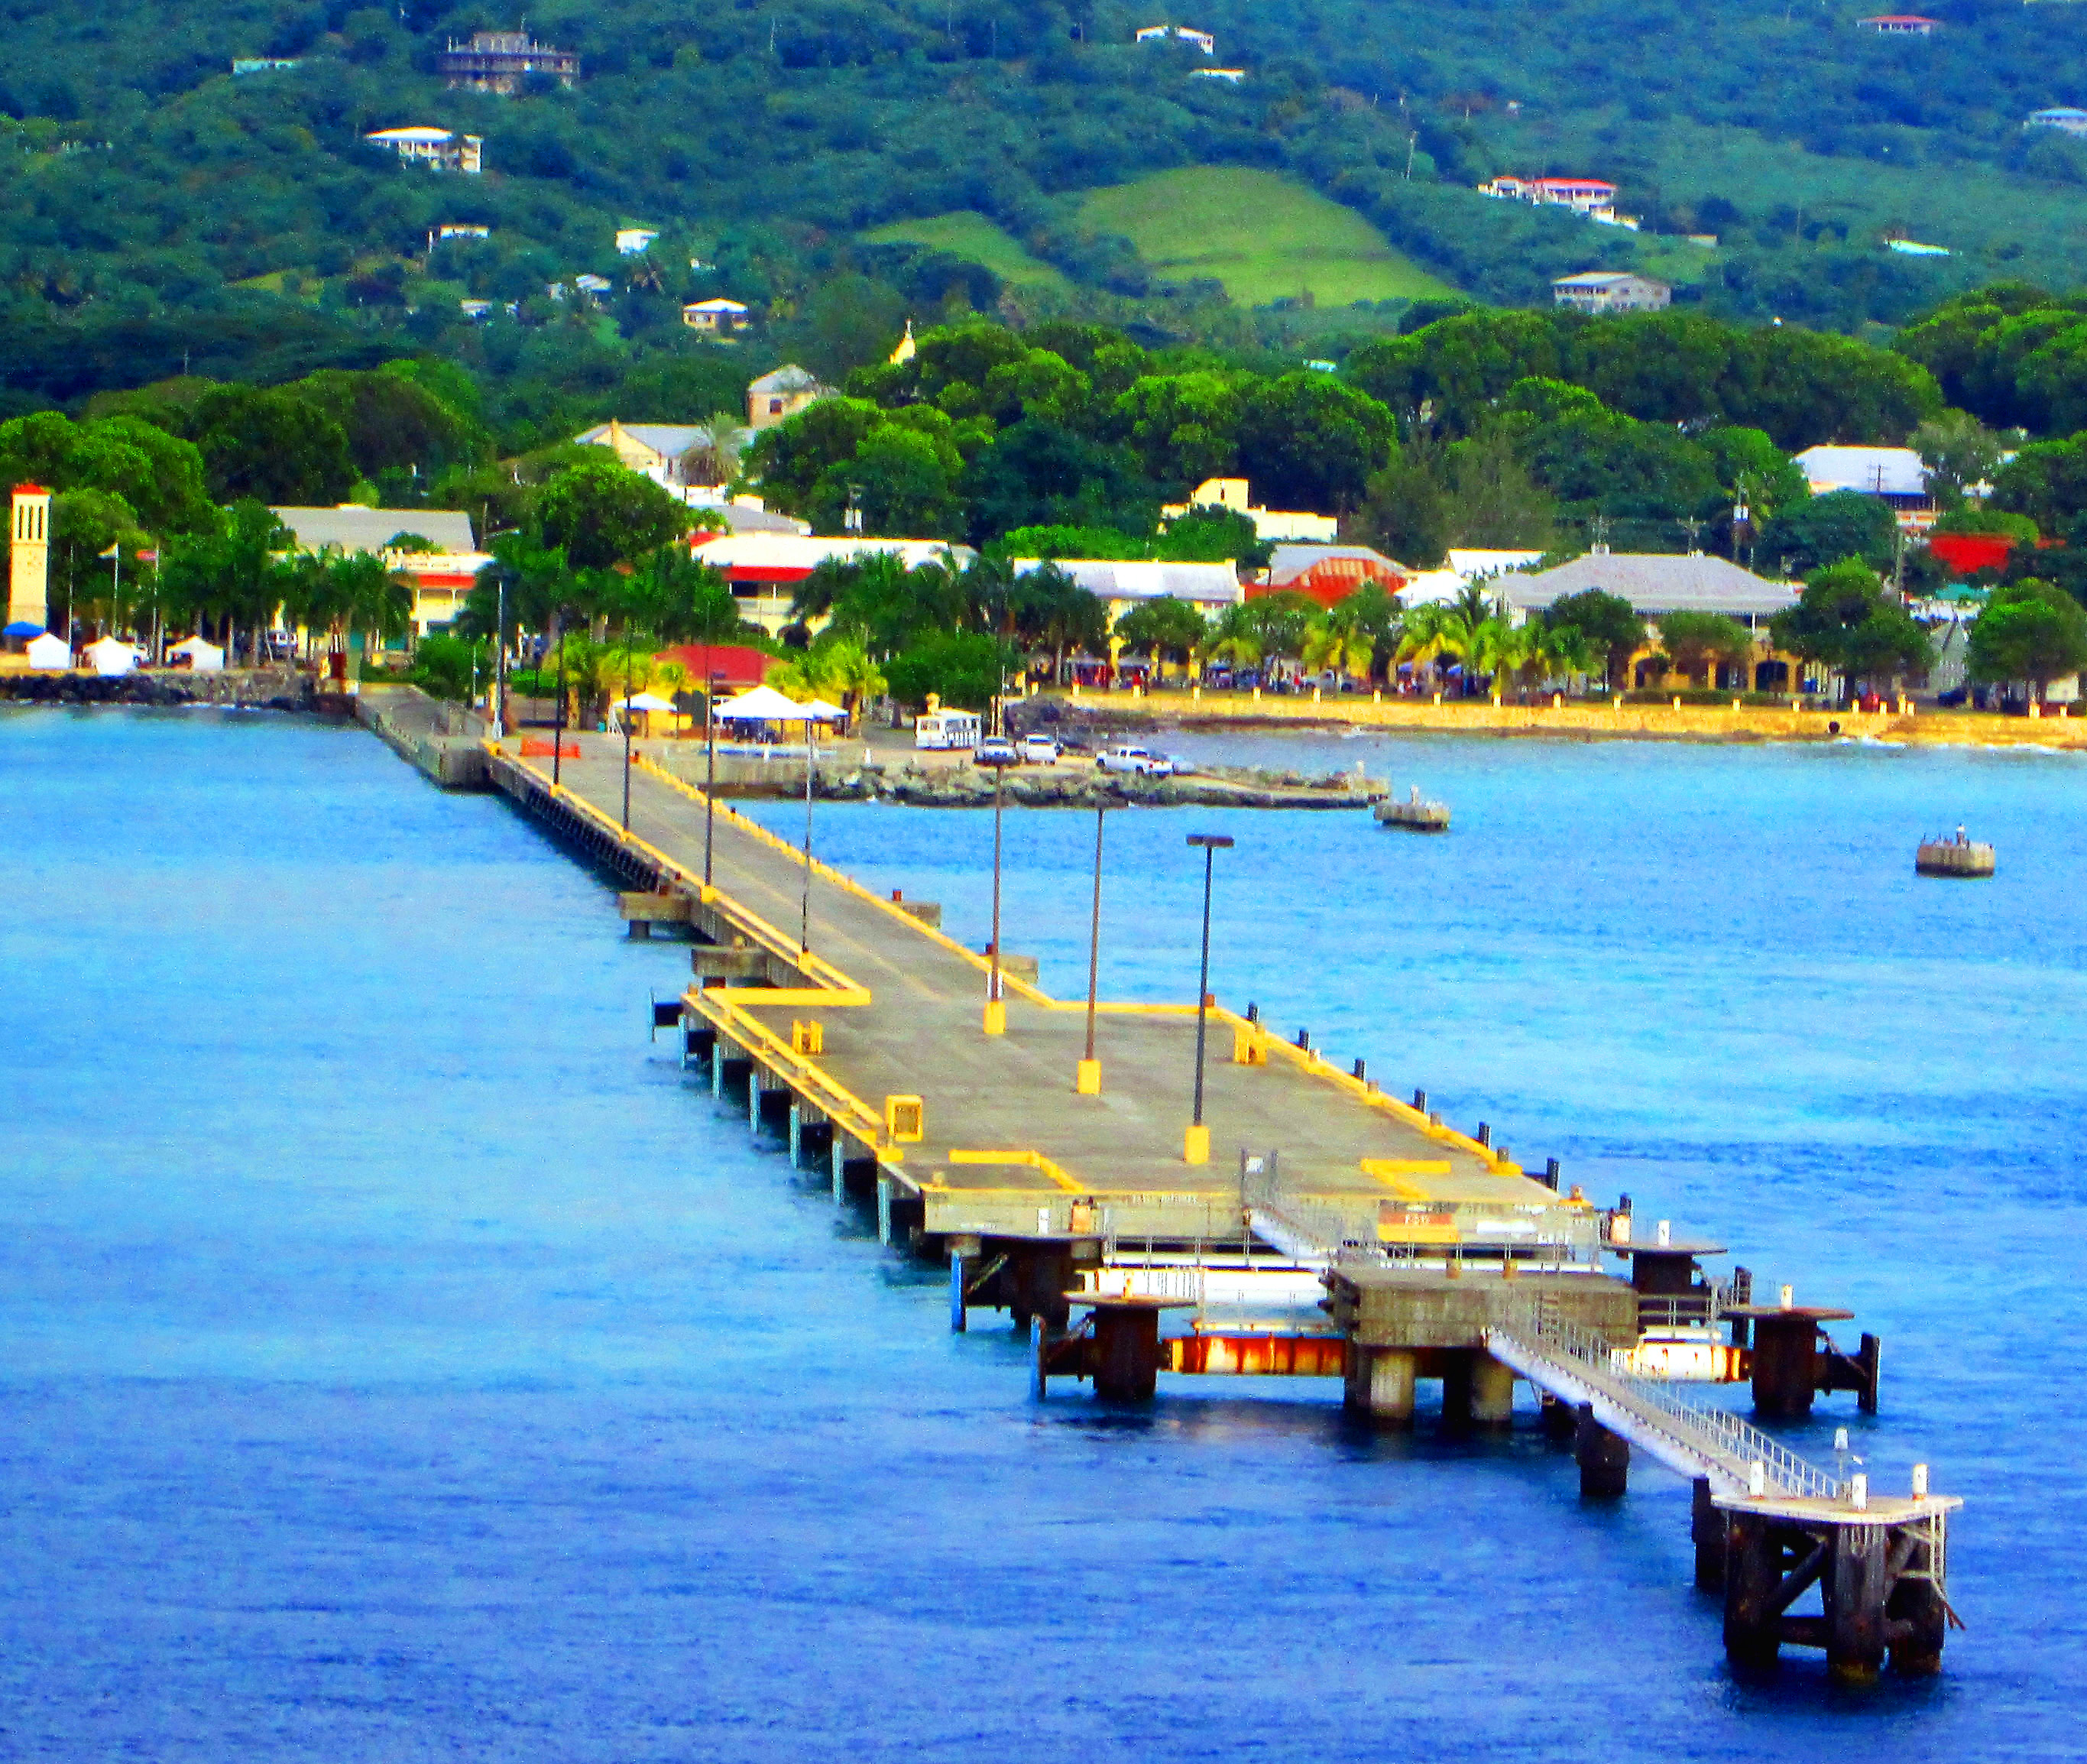 Virgin Islands: 2nd Drowning In Two Days On St. Croix, This Time In